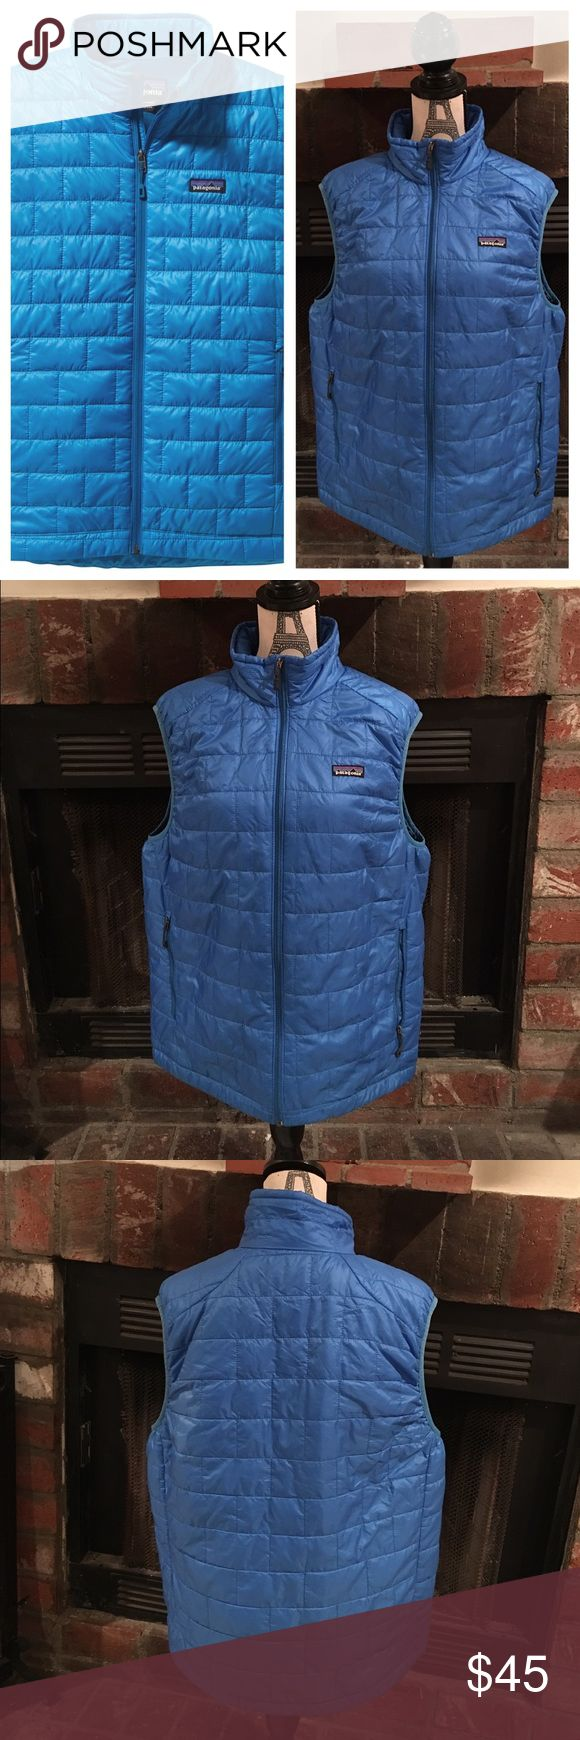 Patagonia Men's Nano Puff Vest  ❄️ Ideal for everything from backpacking to climbing to around town use, the Patagonia Men's Nano Puff Vest delivers lightweight, packable warmth featuring PrimaLoft ONE synthetic insulation that excels in damp and cold conditions, gently worn a few times, no stains or holes 👌🏼 Patagonia Jackets & Coats Vests